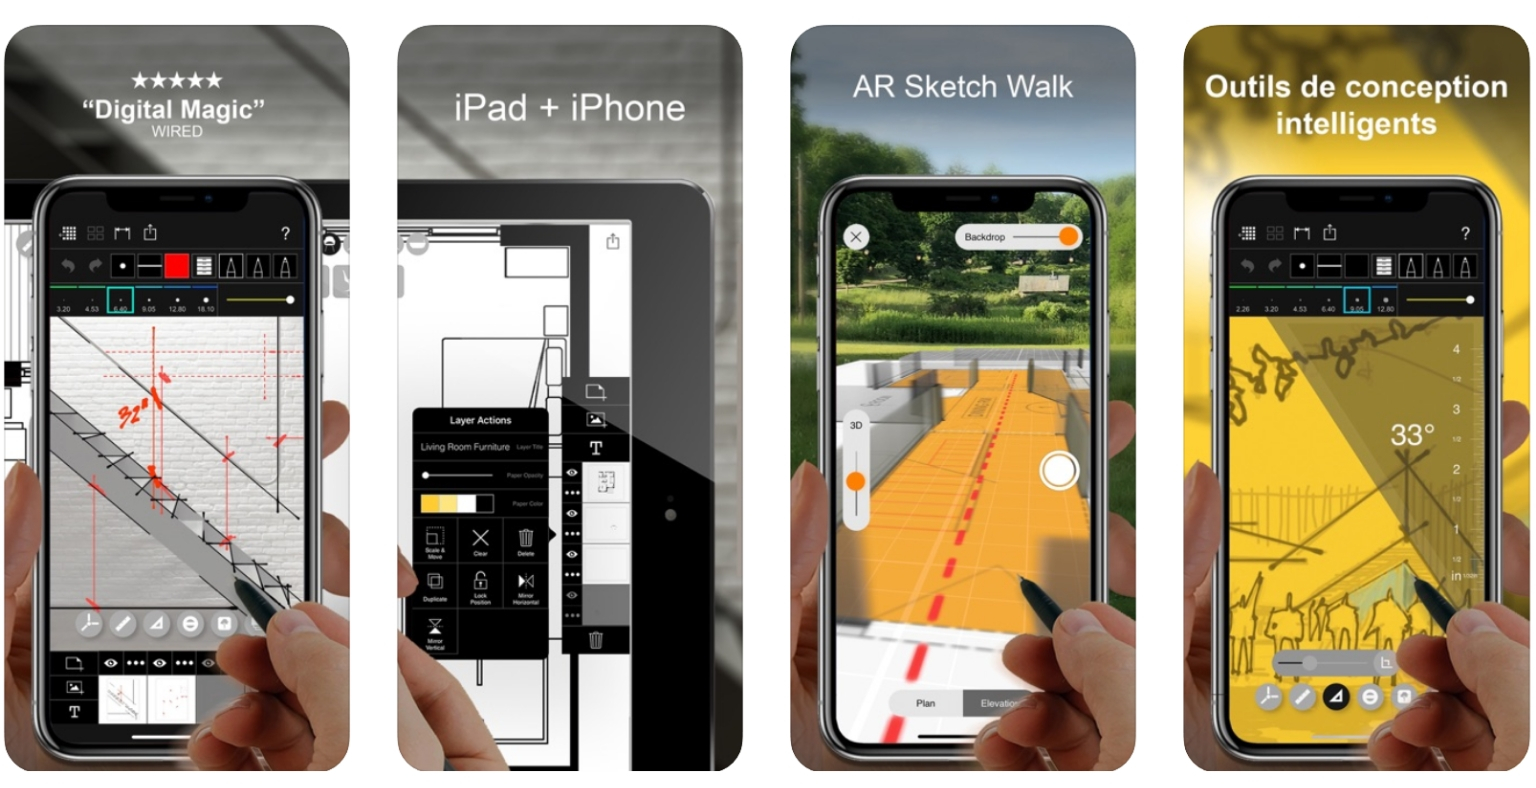 Meilleures applications pour Architectes - morpholio trace